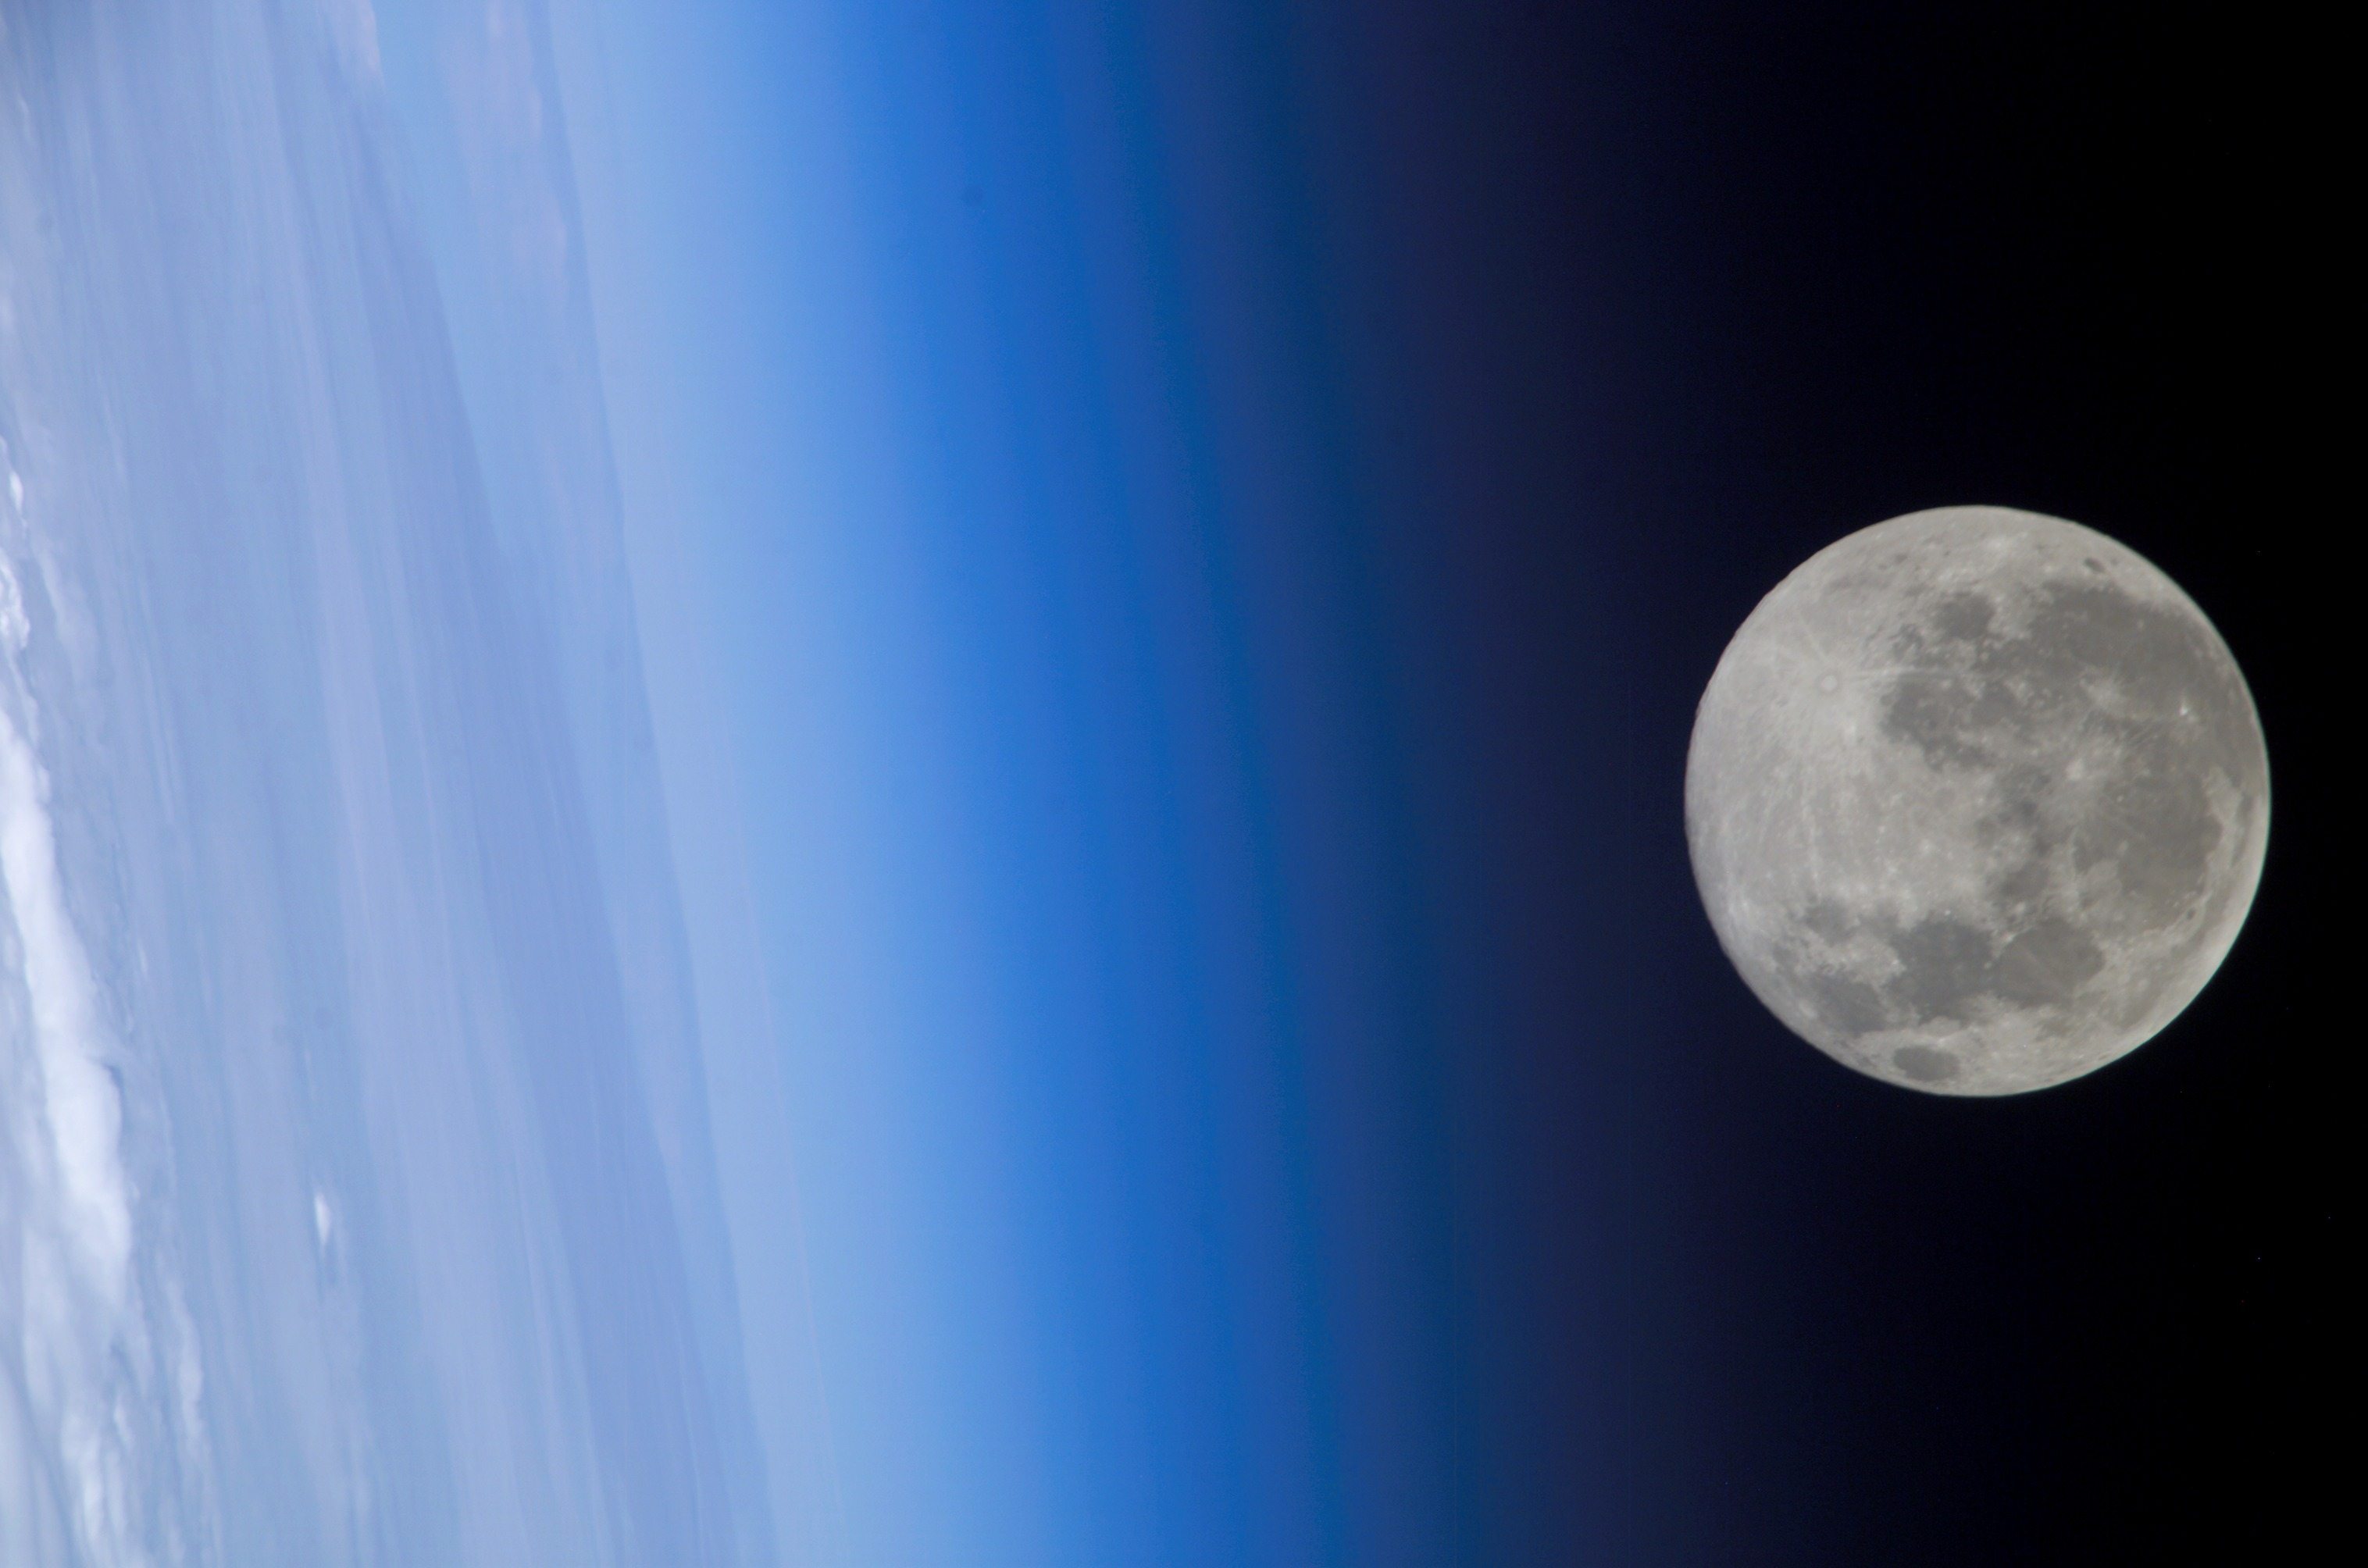 moon space station pictures - photo #39